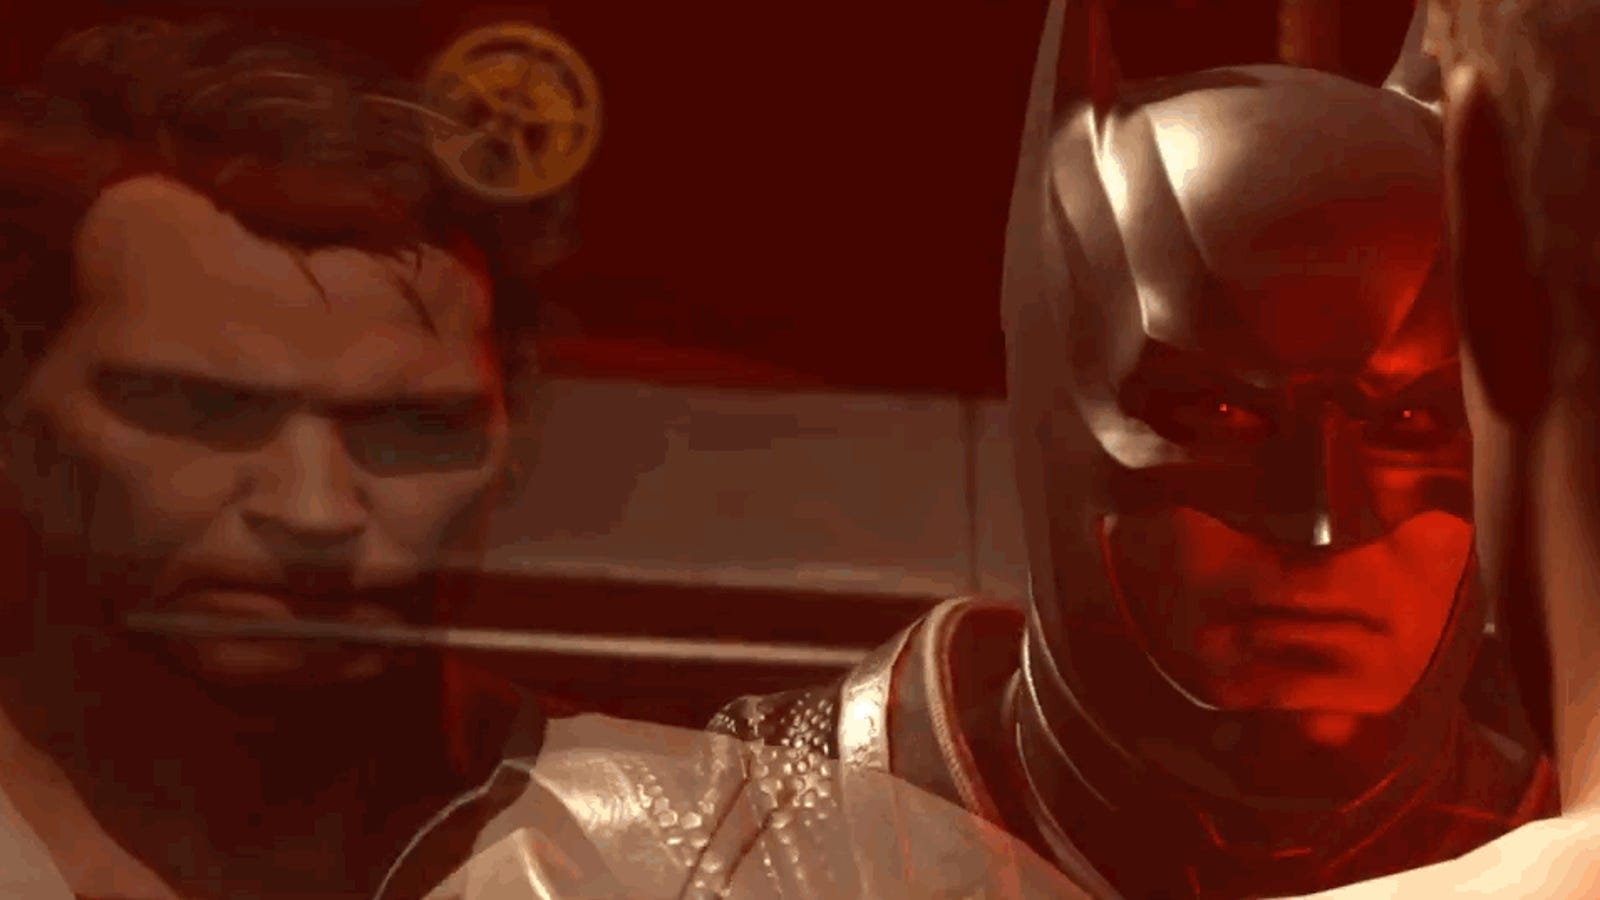 Superman Tries to Convince Batman of the Benefits of Murder in New Injustice 2 Trailer